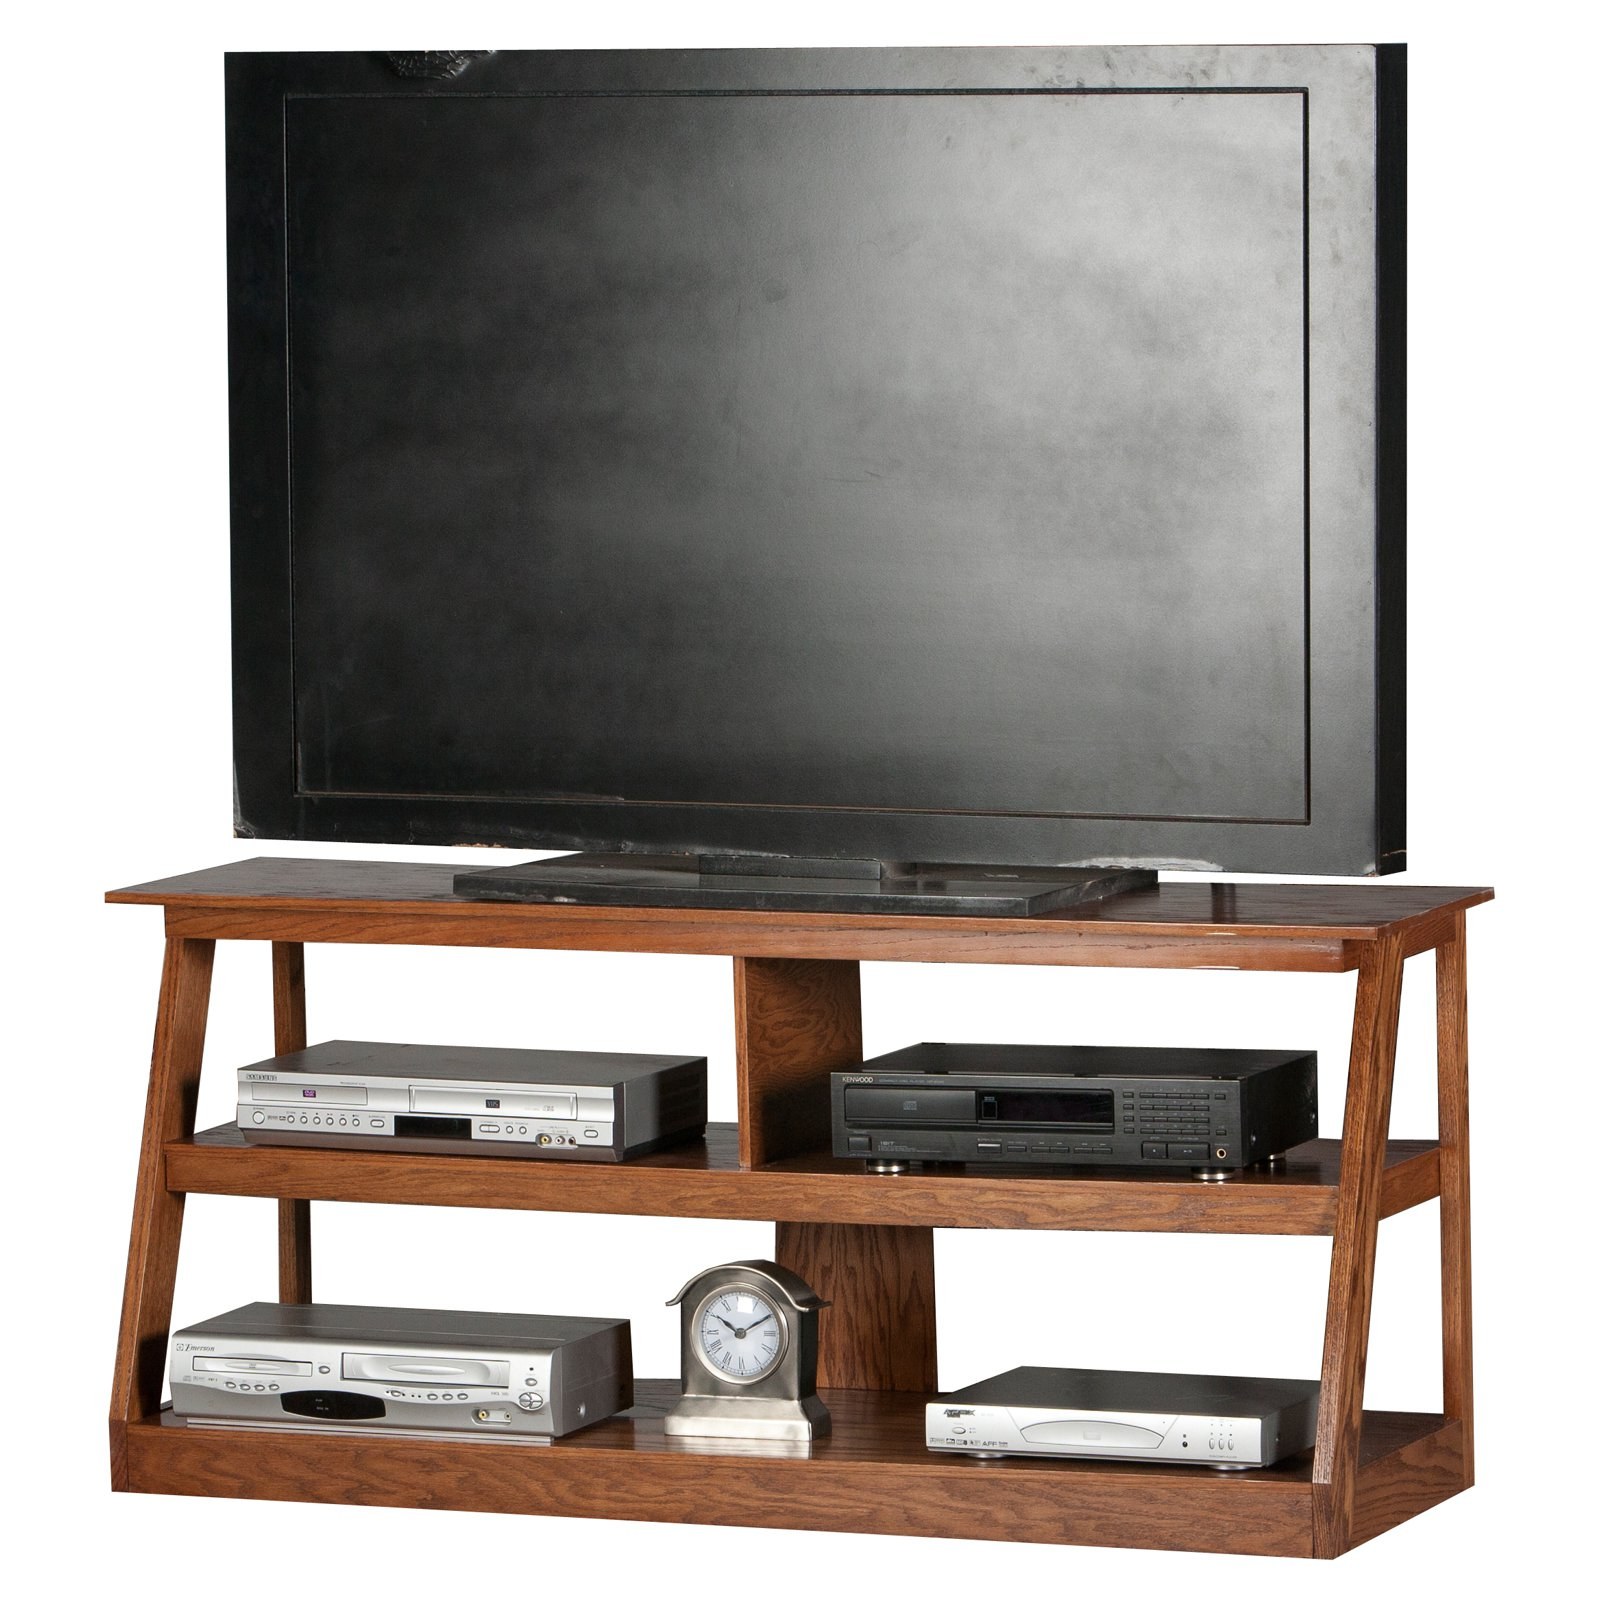 Eagle Furniture Adler Customizable 55 in. Open Entertainment TV Stand